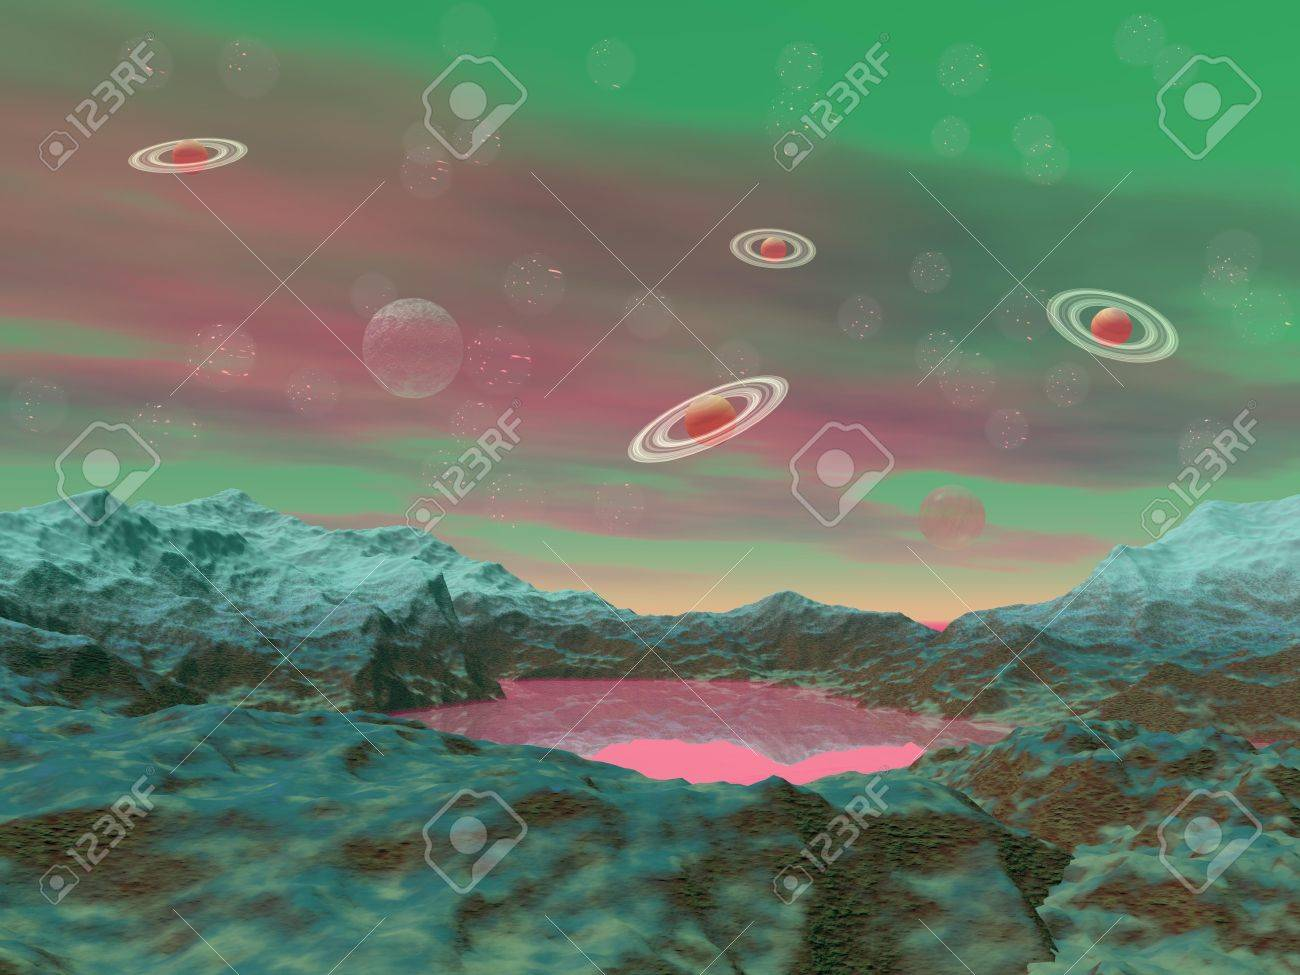 Pink and green landscape with small lake in rock mountains and saturn planets Stock Photo - 16250618